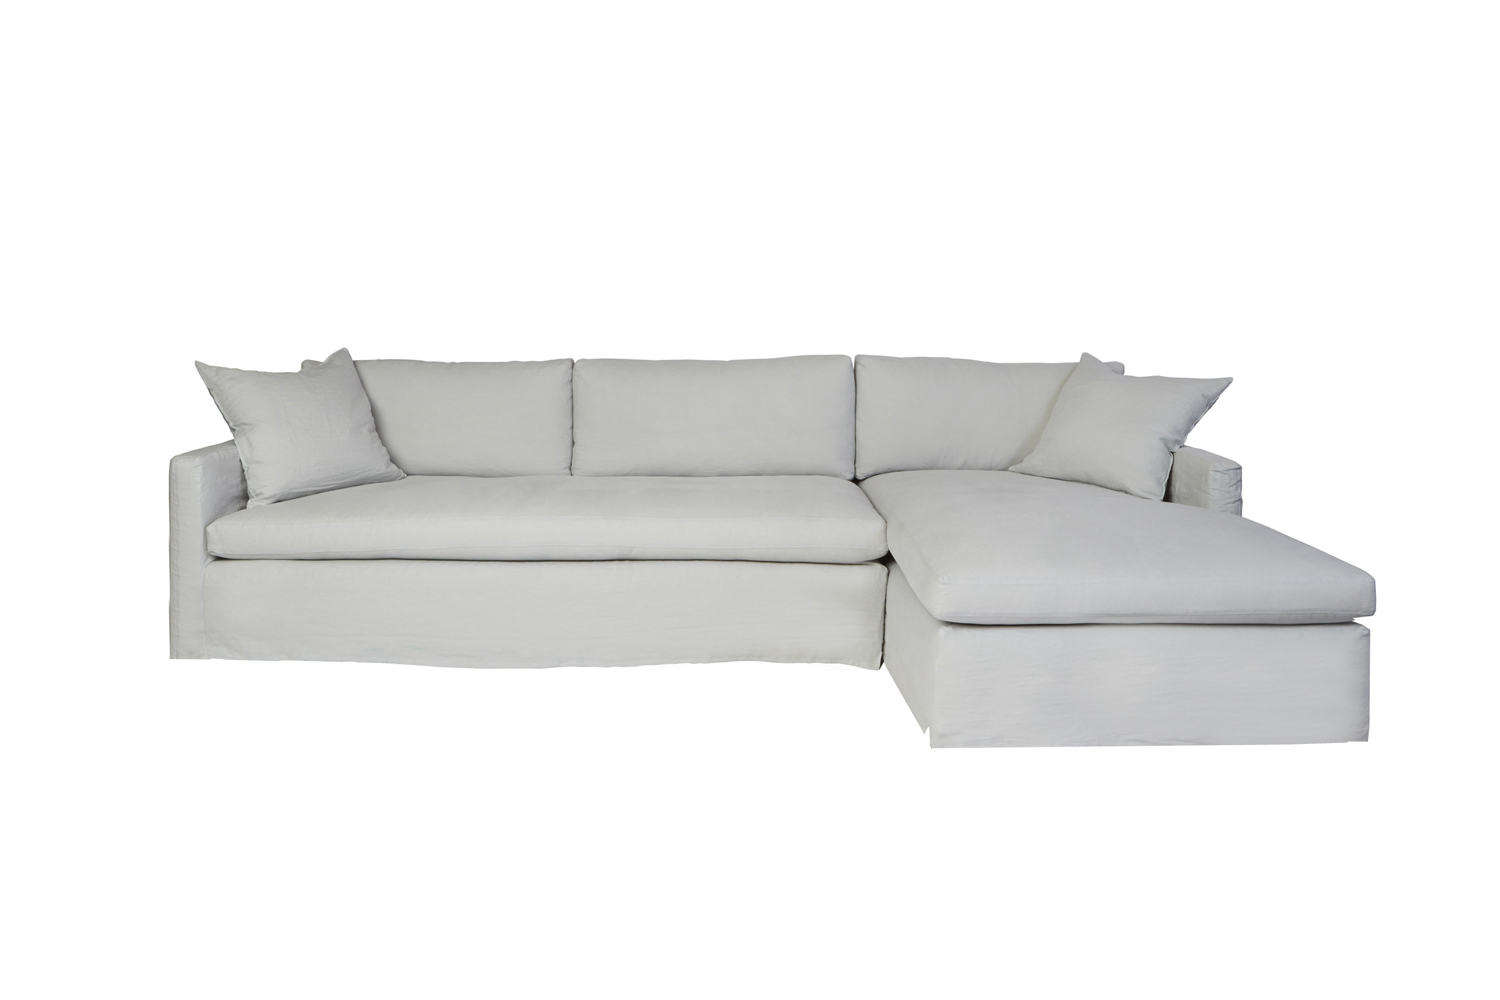 10 Easy Pieces: Sectional Chaise Sofas | Remodelista: Sourcebook for Chaise Longue Le Corbusier D Cad on le corbusier art, le corbusier lounge, le corbusier lamp, le corbusier recliner, le corbusier bed, le corbusier ville radieuse, le corbusier desk, le corbusier stool, le corbusier club chair, le corbusier bench, le corbusier books, le corbusier furniture, le corbusier table, le corbusier ville contemporaine, le corbusier chair dimensions, le corbusier loveseat, le corbusier armchair, le corbusier architecture, le corbusier modulor, le corbusier barcelona,